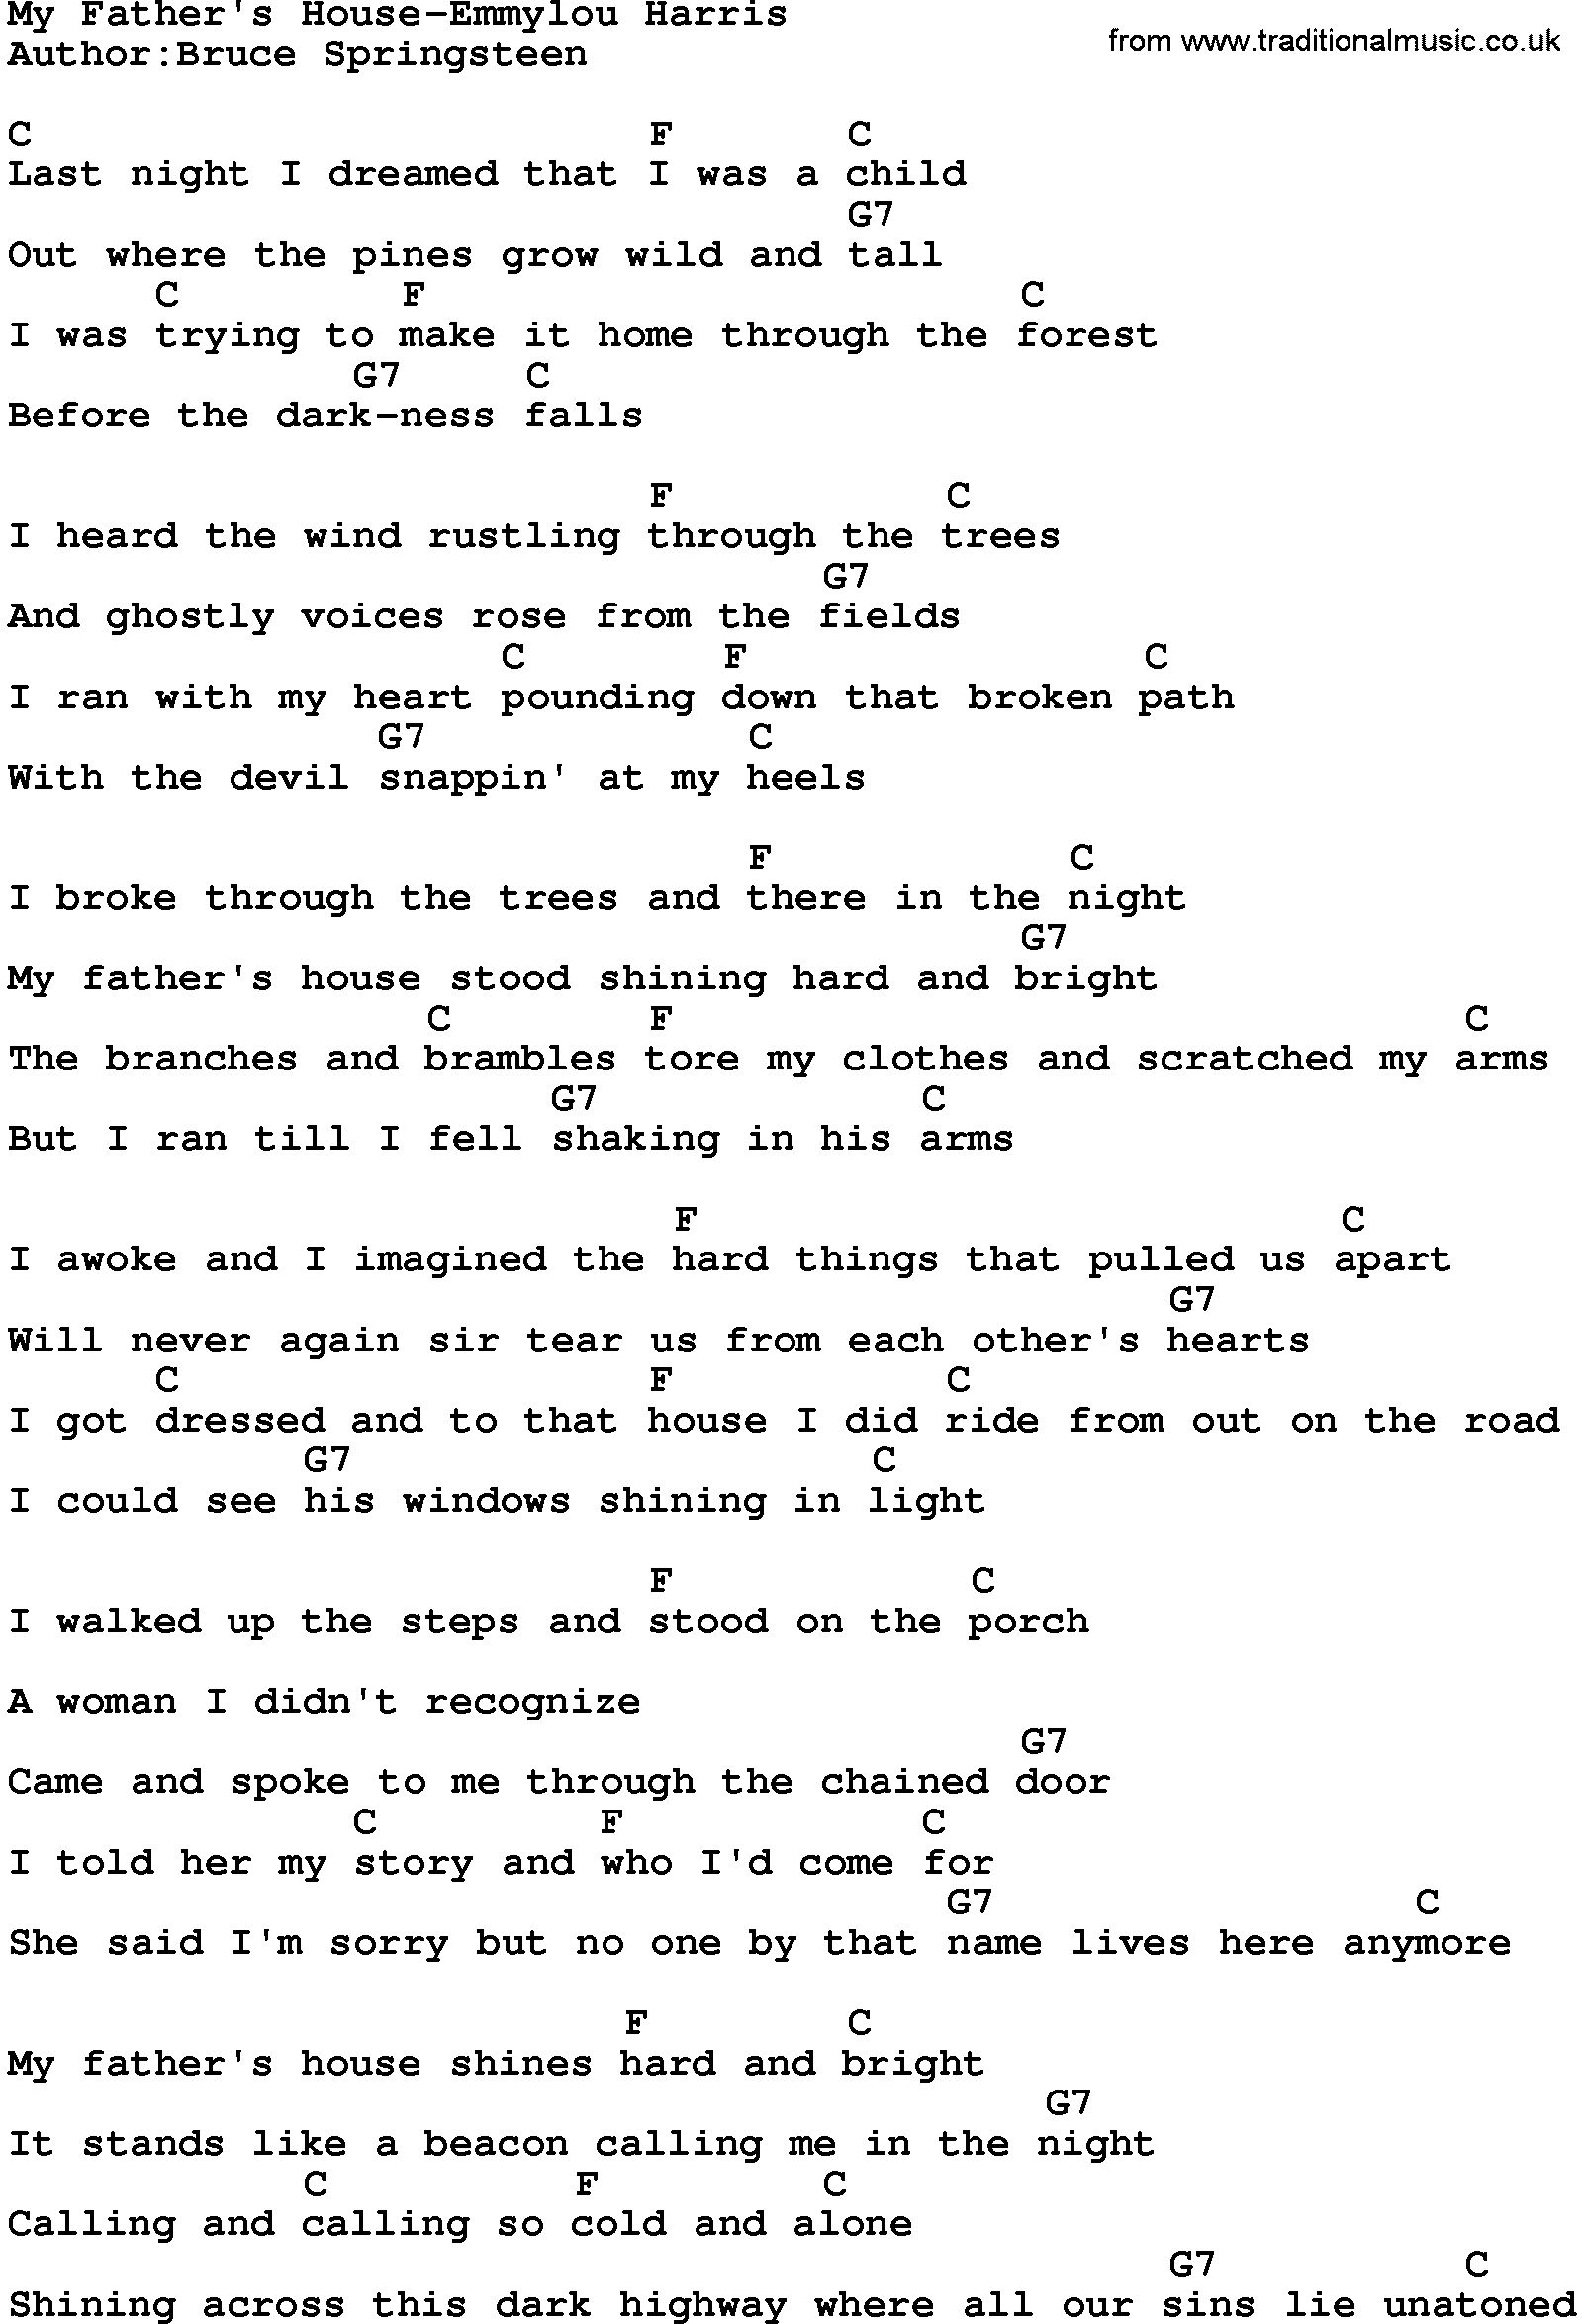 Country MusicMy Fathers House Emmylou Harris Lyrics and Chords